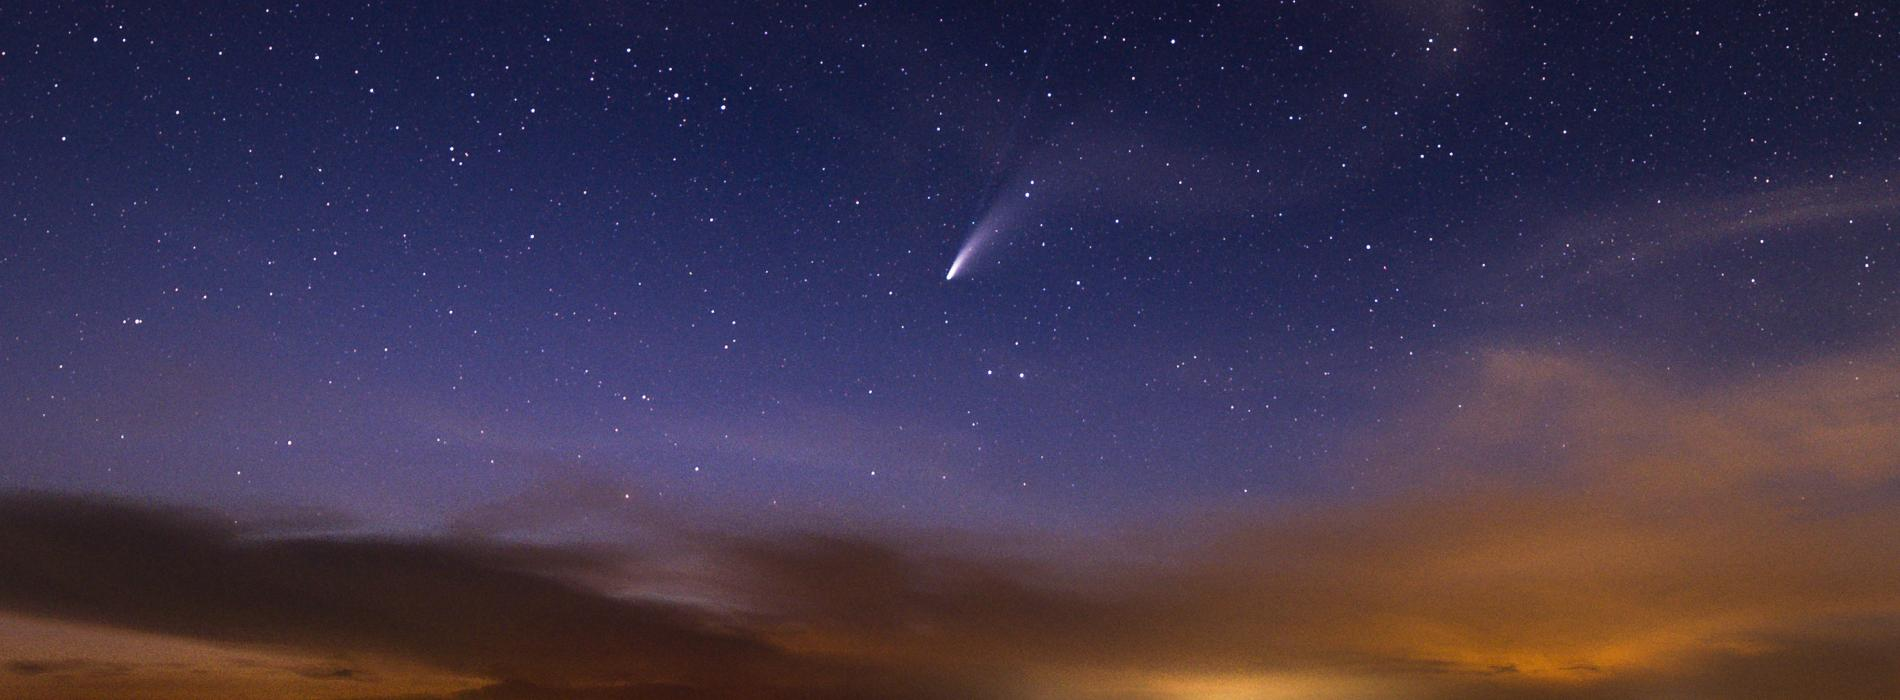 Neowise Comet from Edisto Beach